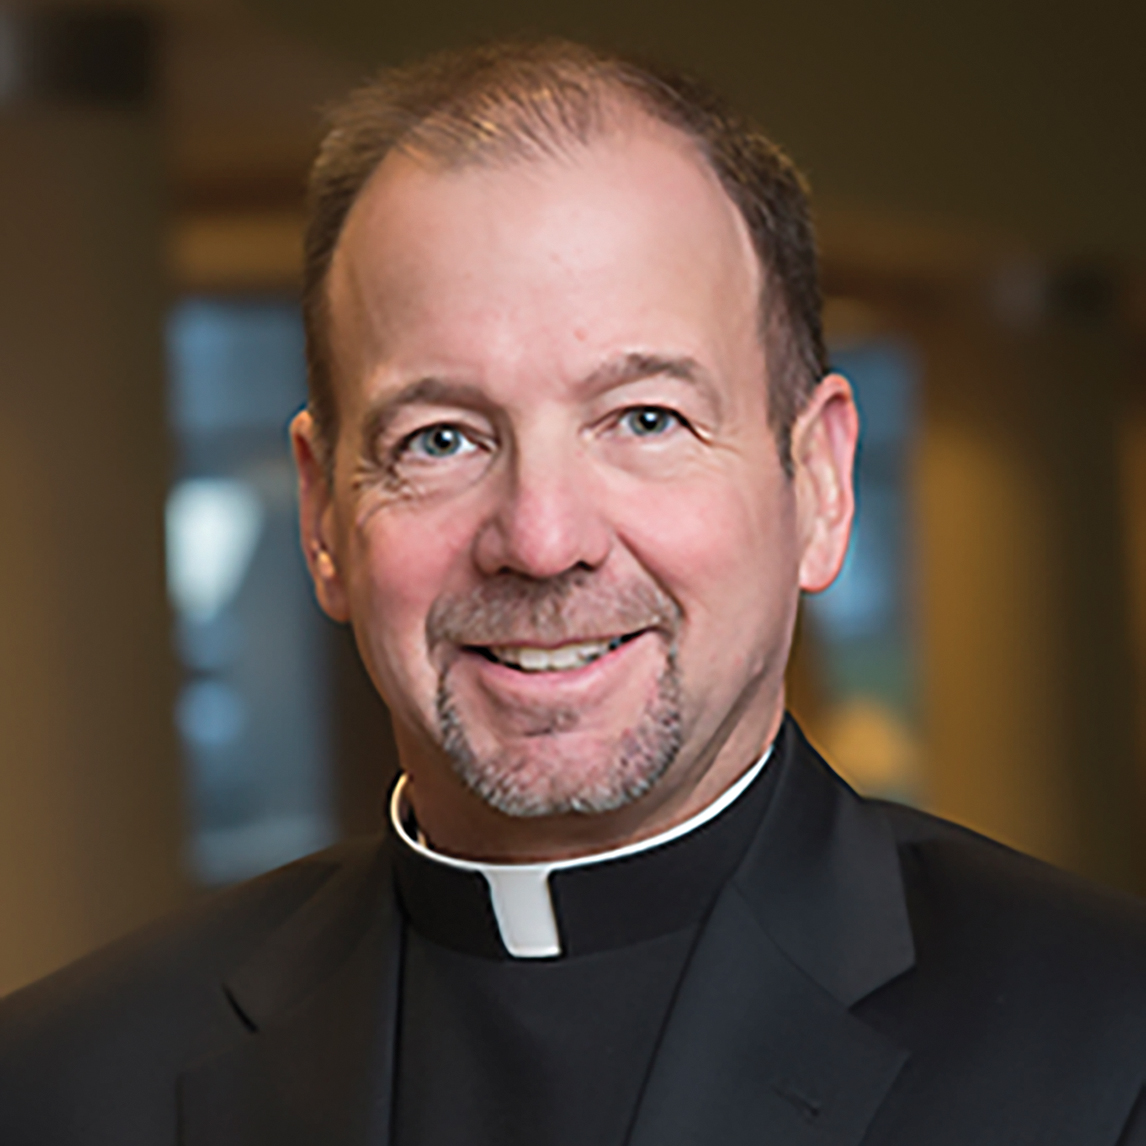 Msgr. Richard Hilgartner